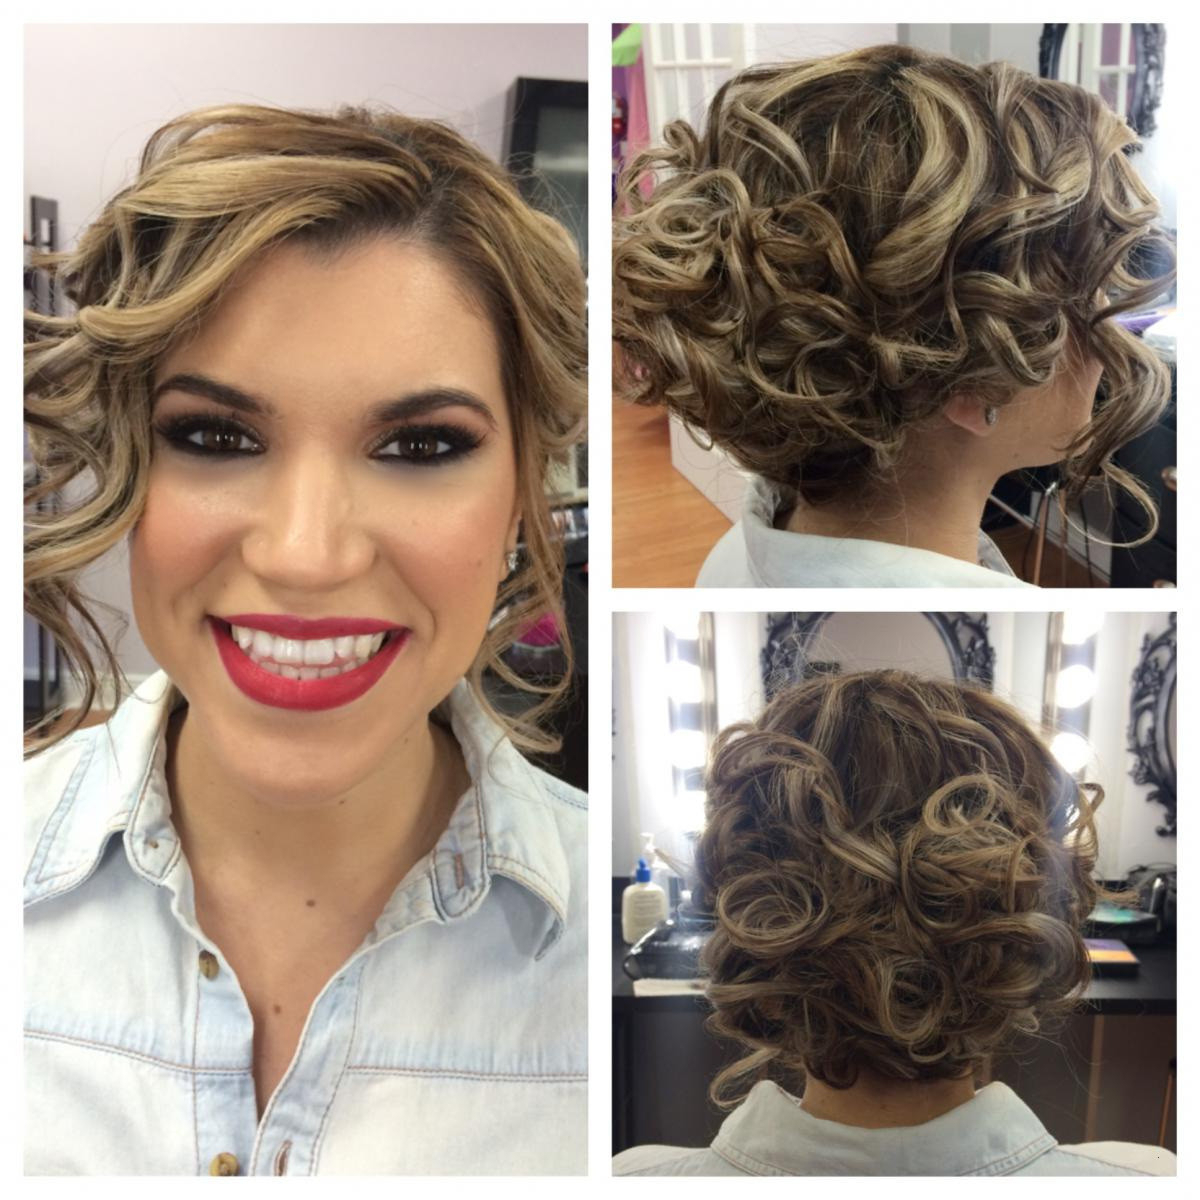 Elegant Wedding Guest Hairstyles For Short Hair – Aidasmakeup In Hairstyles For A Wedding Guest With Short Hair (View 16 of 25)